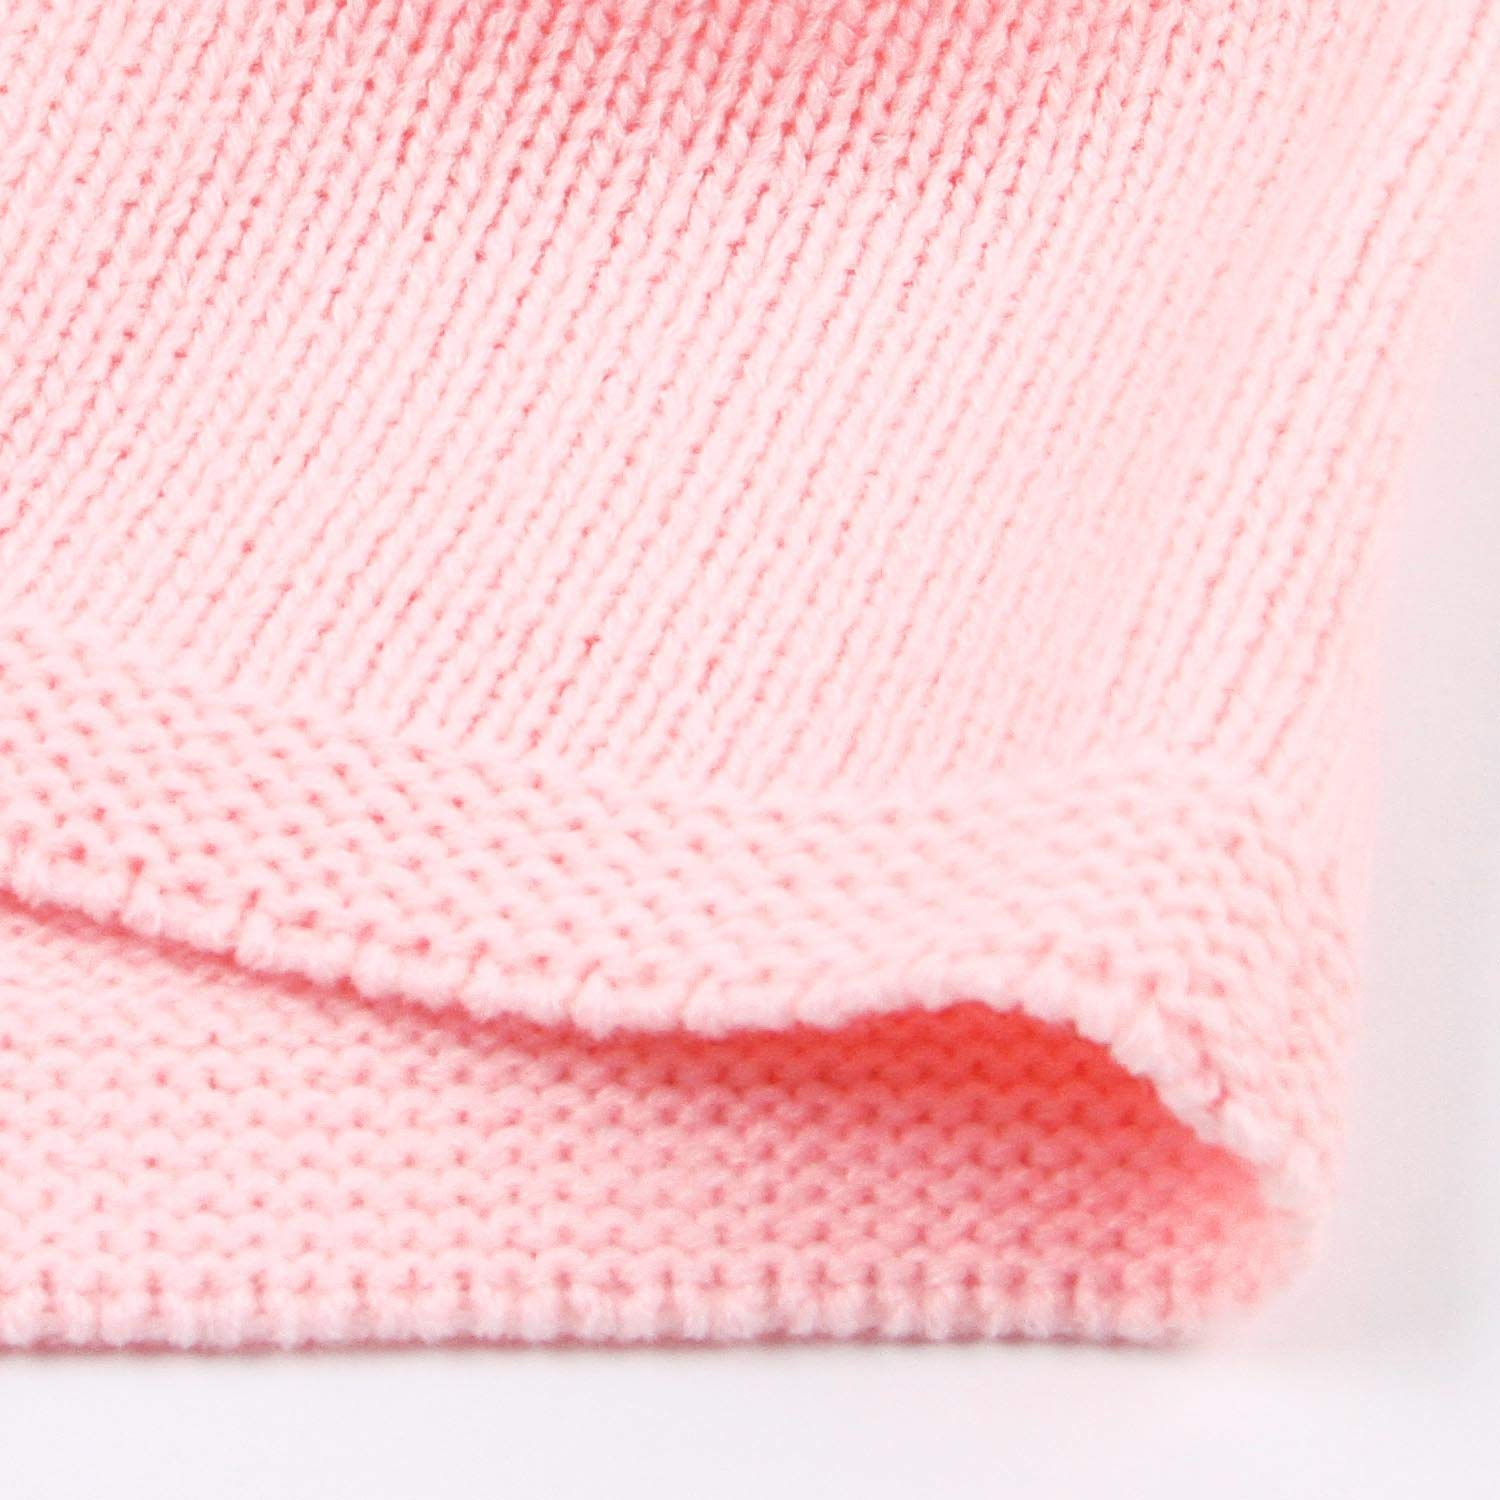 KONFA Toddler Newborn Baby Girls Boys Soft Cardigan Sweater,for 0-24 Months,Kids Warm Knitted Pullover Tops Winter Clothes